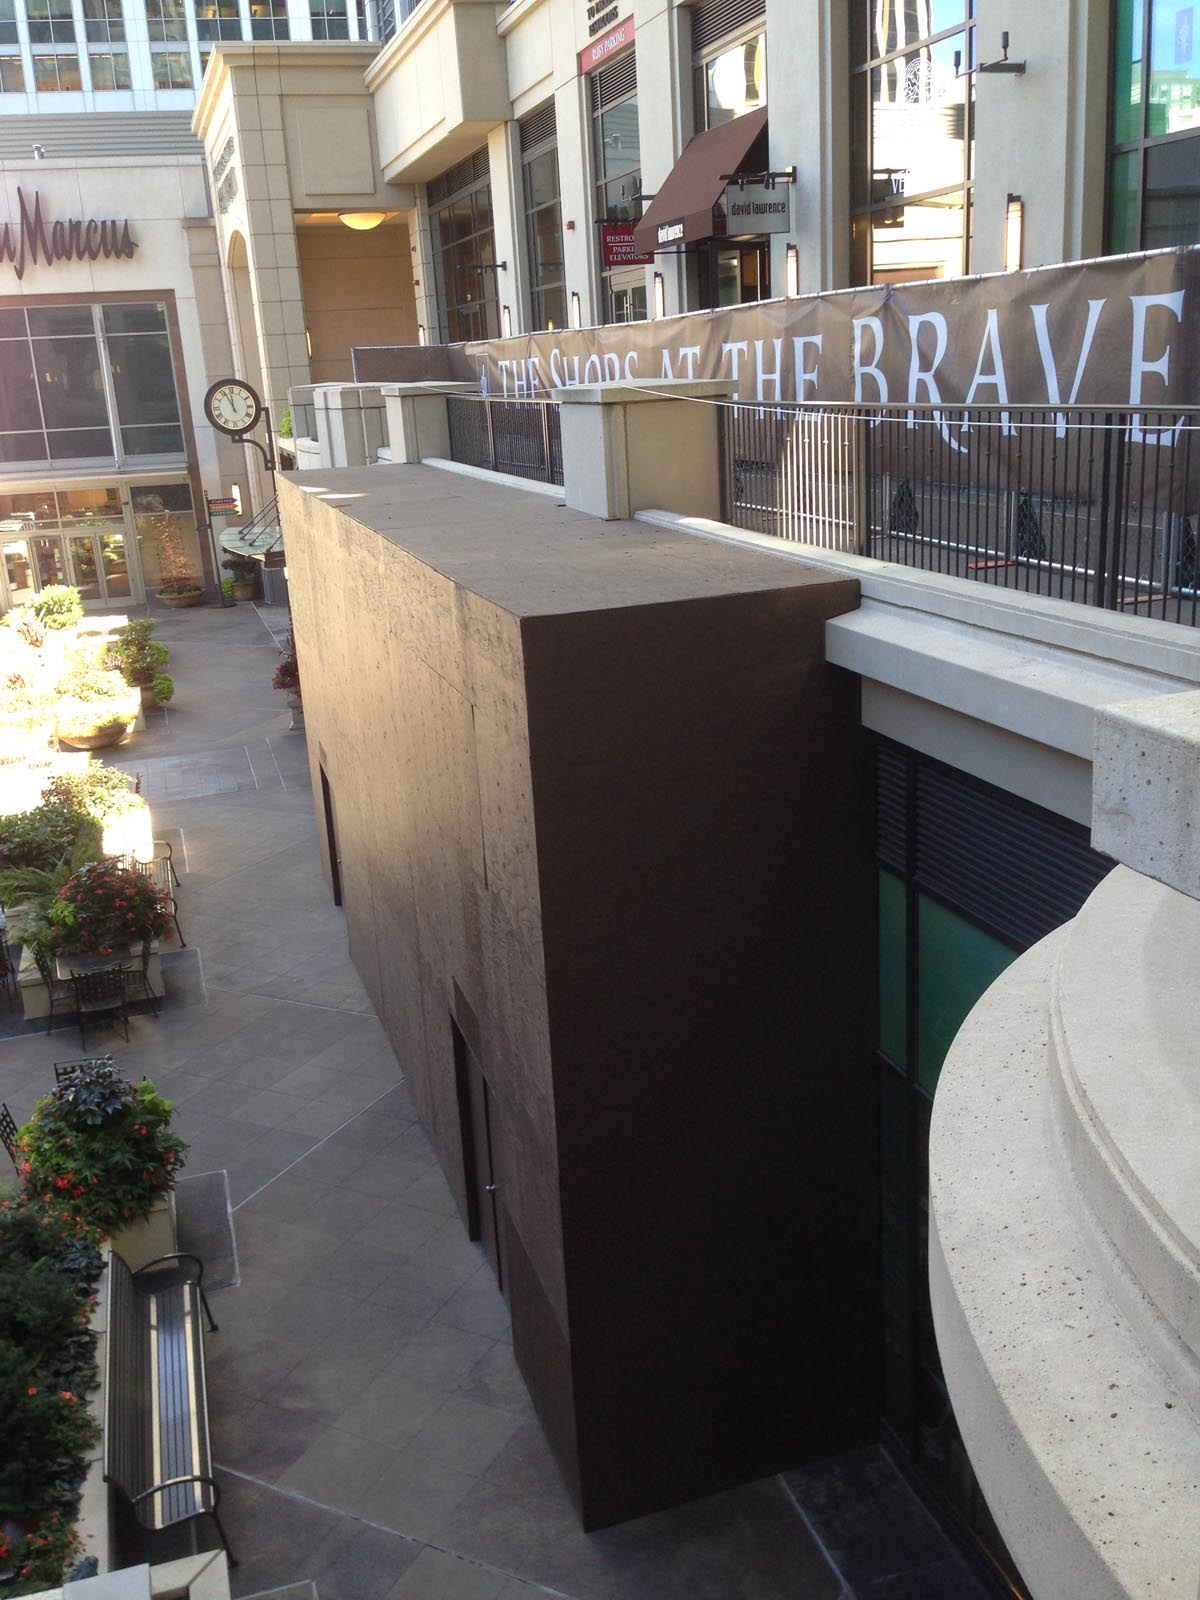 Bravern Storefront and balcony area